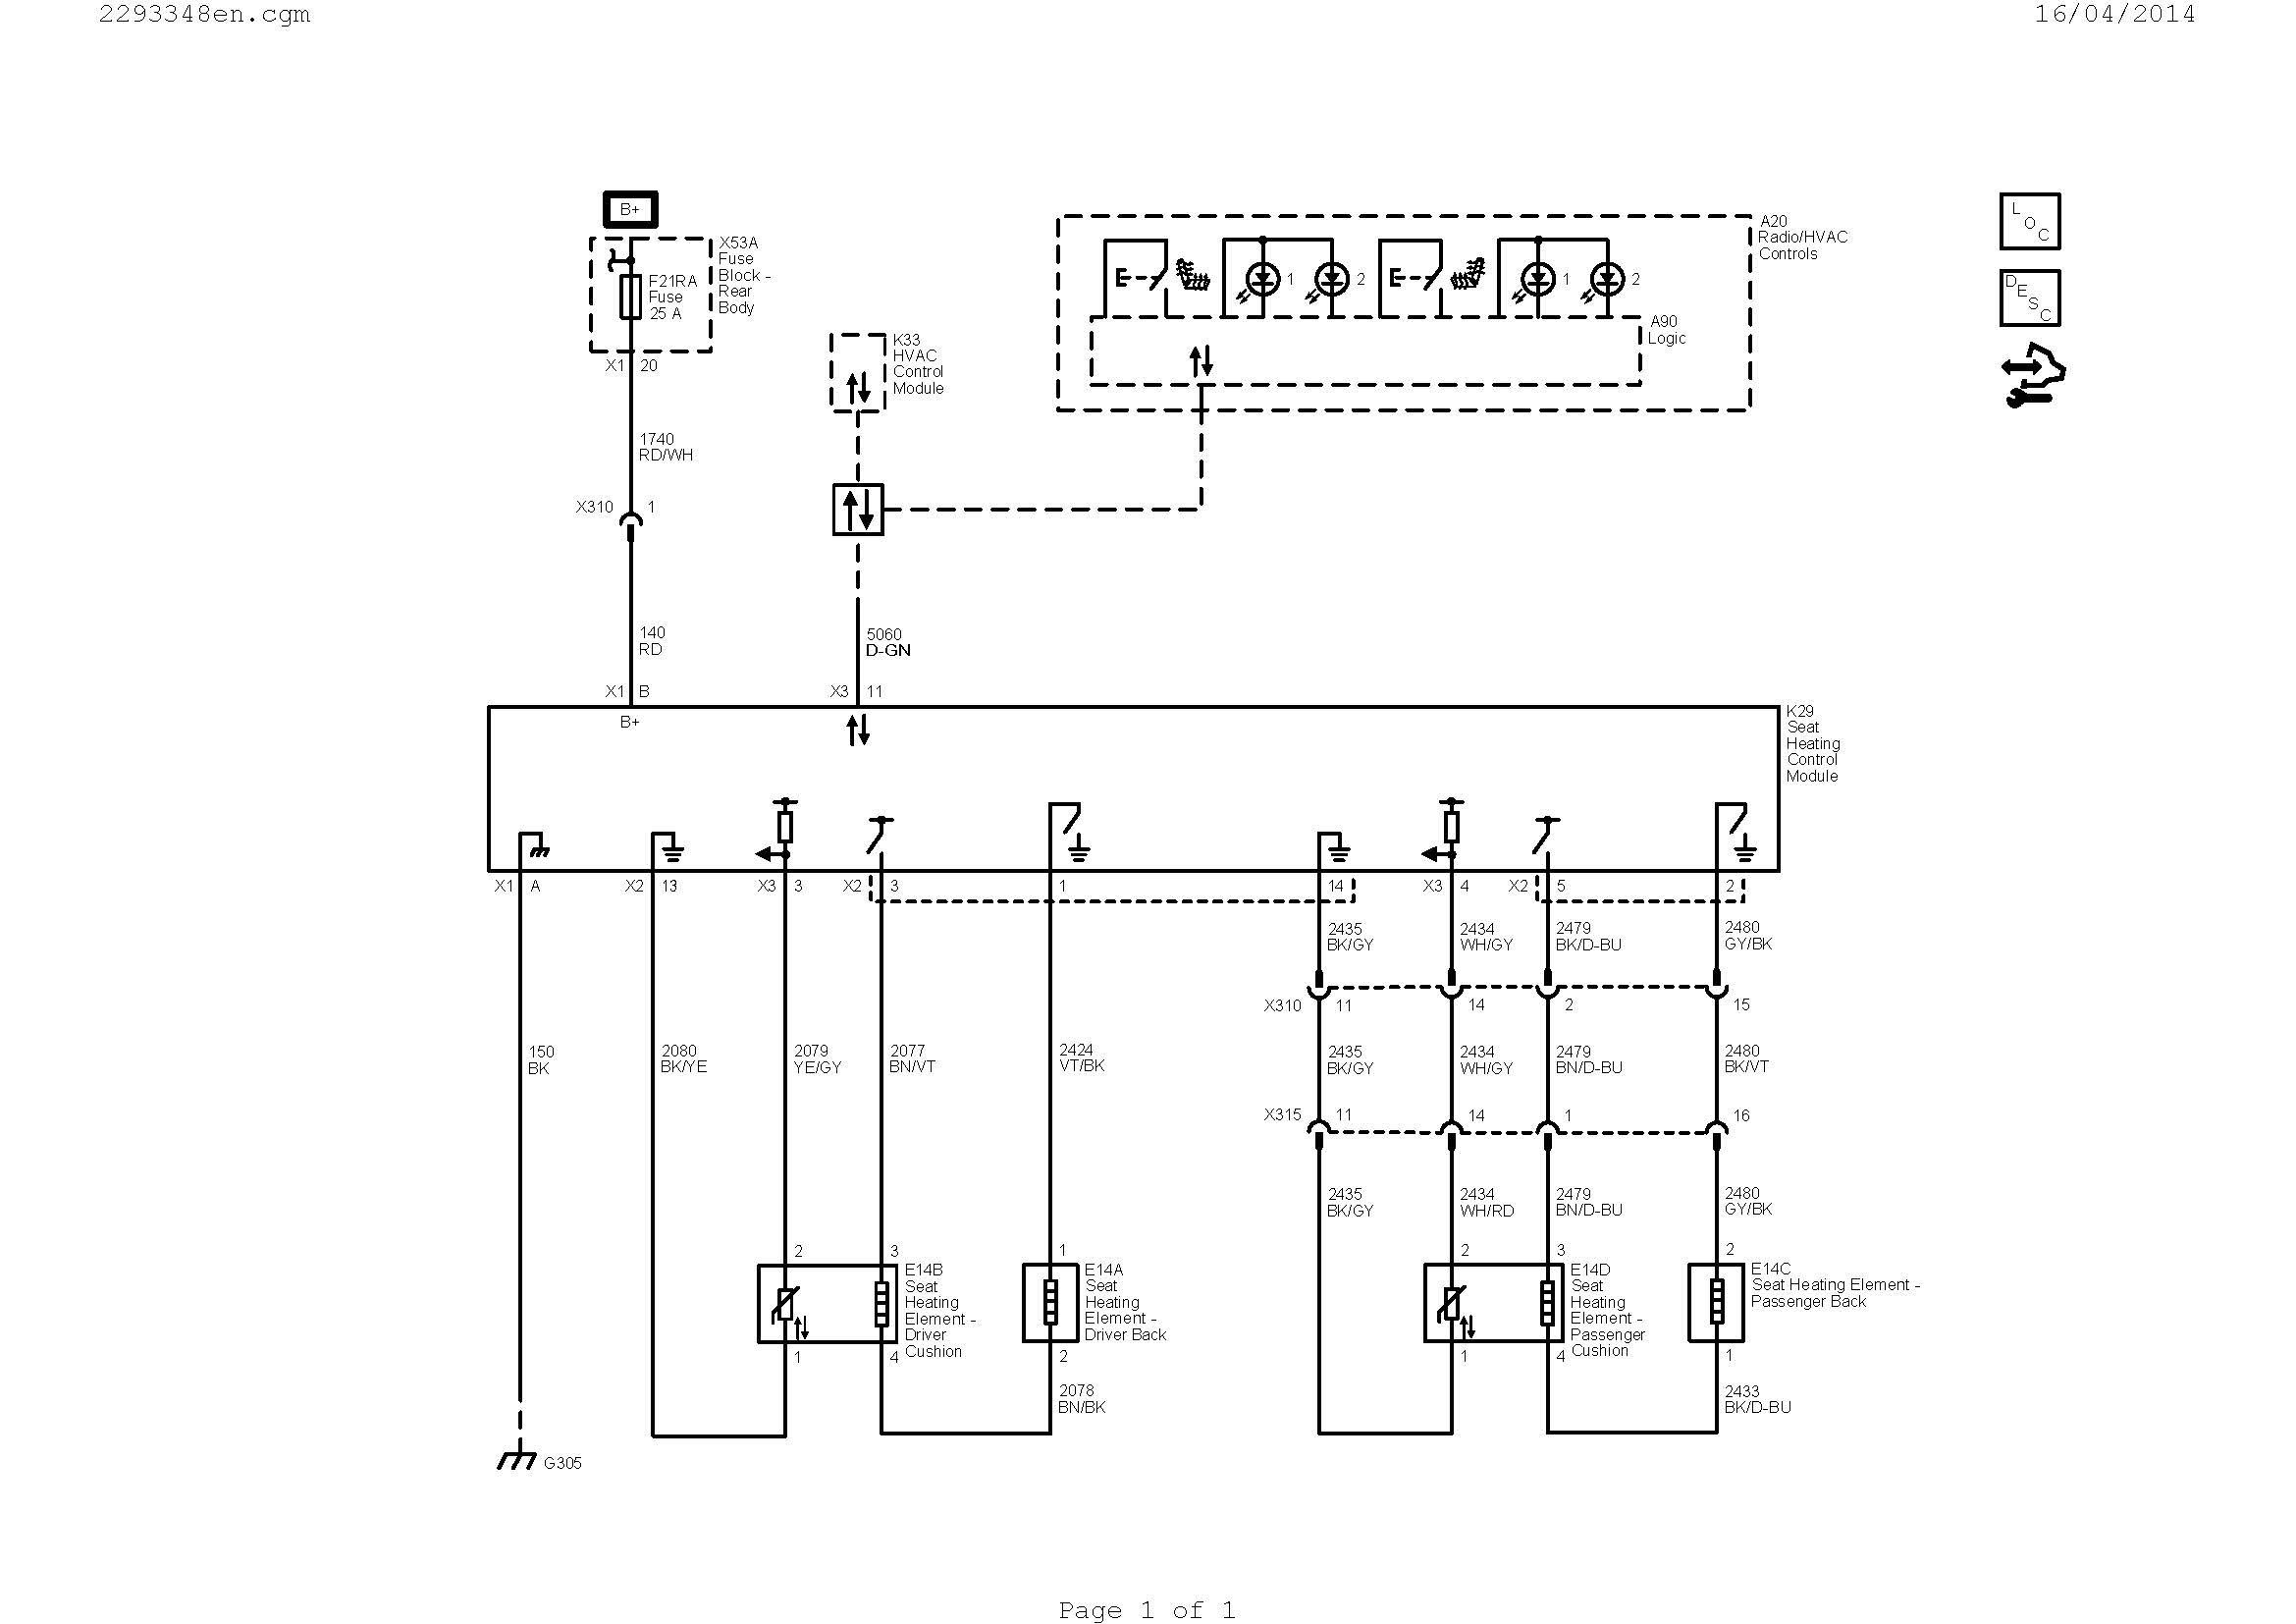 thermostat wiring diagram Download-Nest Wireless thermostat Wiring Diagram Refrence Wiring Diagram Ac Valid Hvac Diagram Best Hvac Diagram 0d 17-c